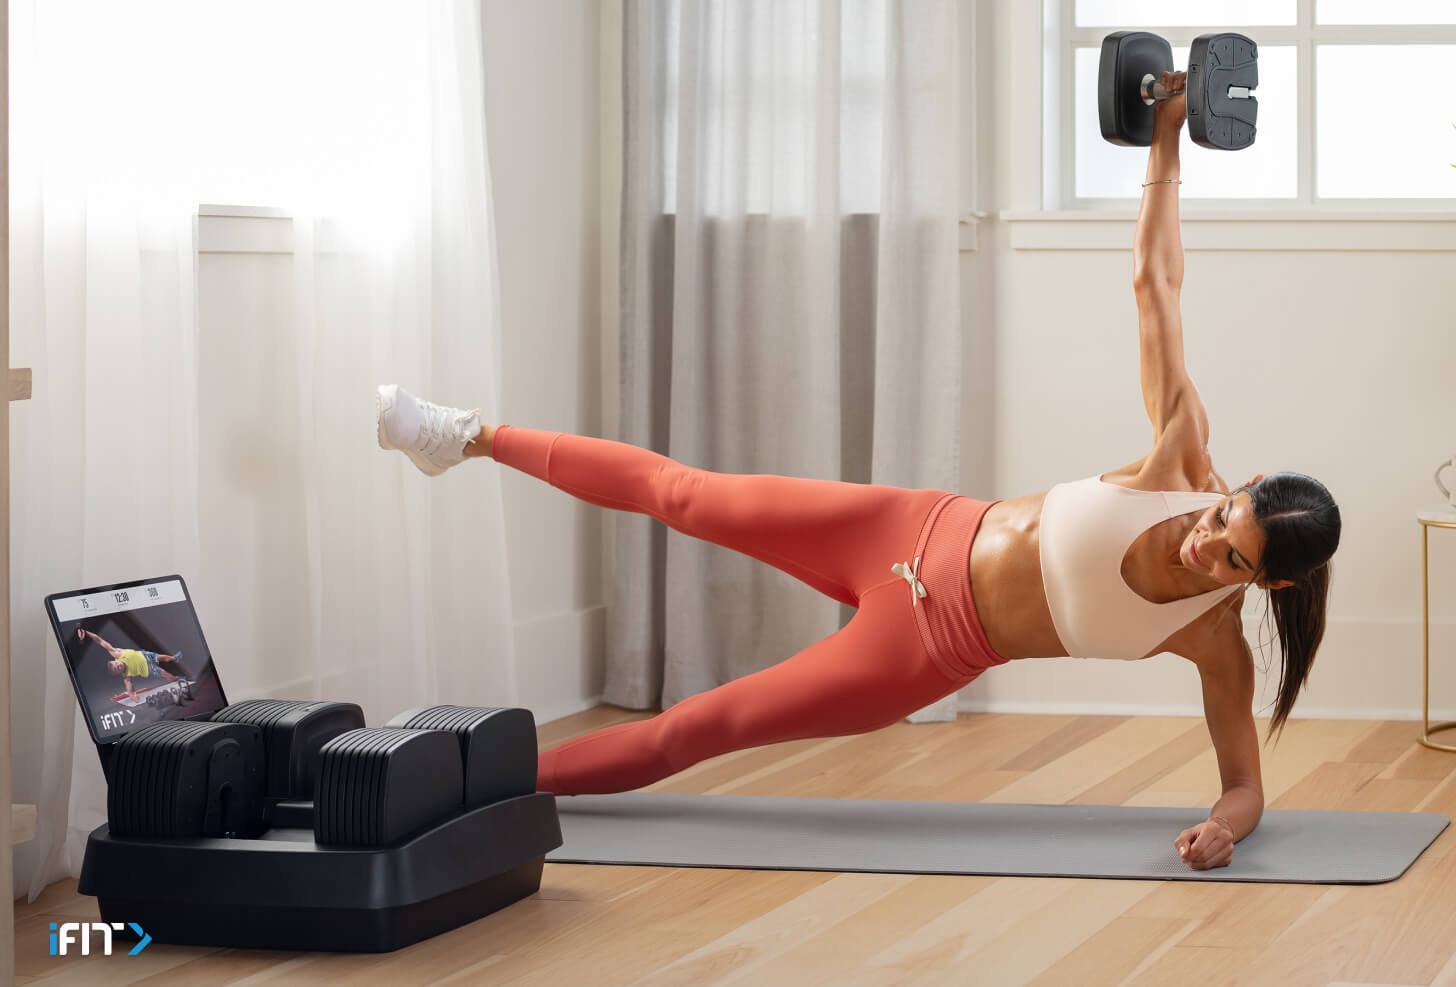 iFIT abs workouts